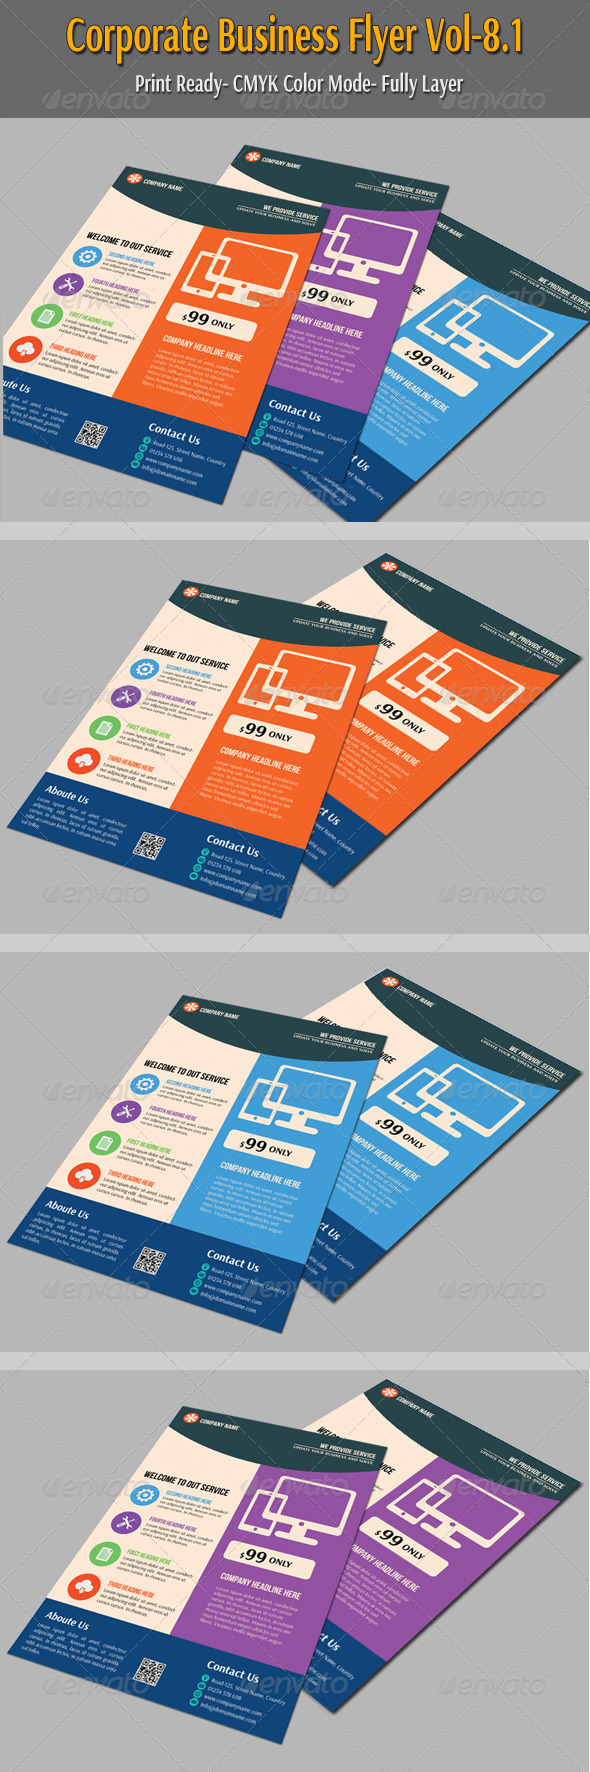 GraphicRiver Corporate Business Flyer Vol-8.1 6607916